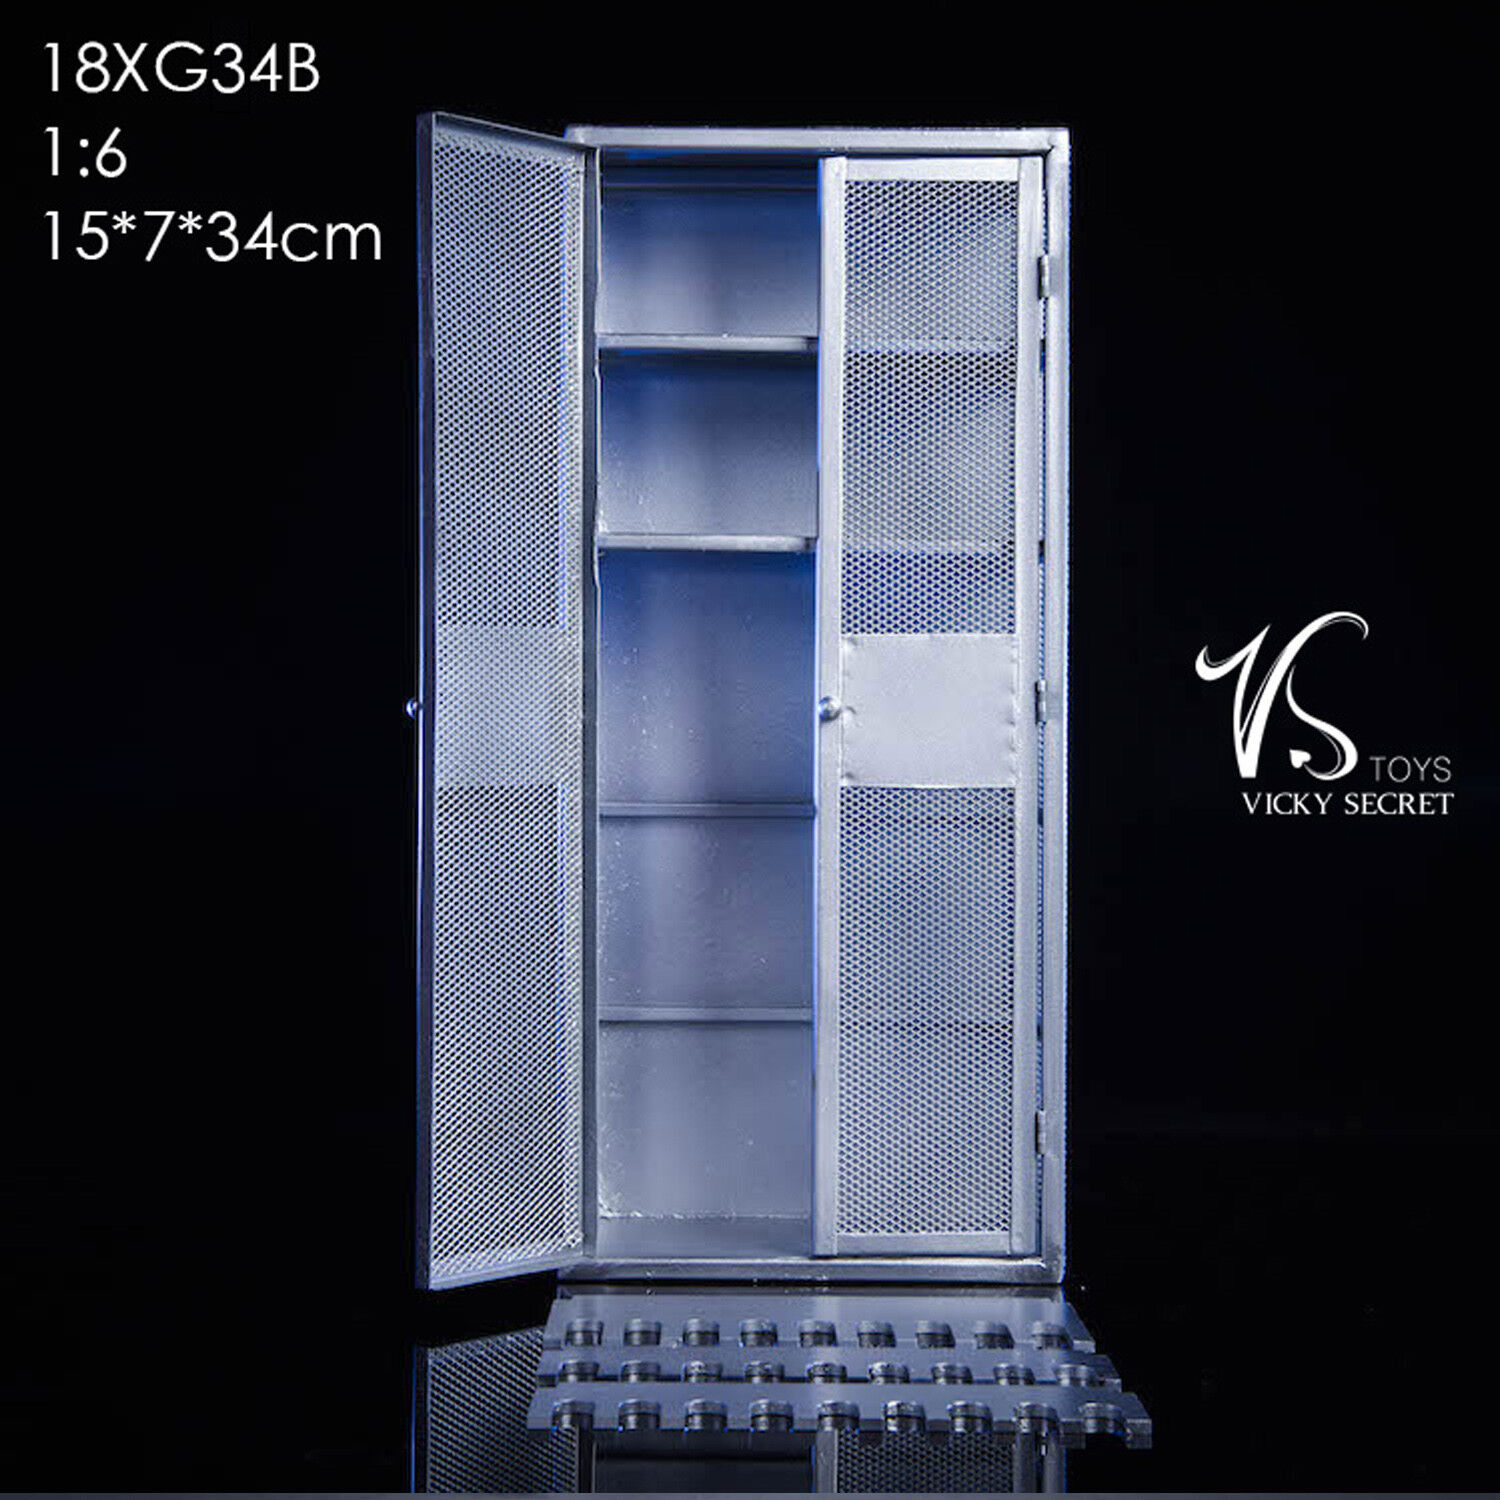 VSSpielzeugS 1 6 Scale Metal Cabinet 18XG34B Fit for 12  Wirkung Figure